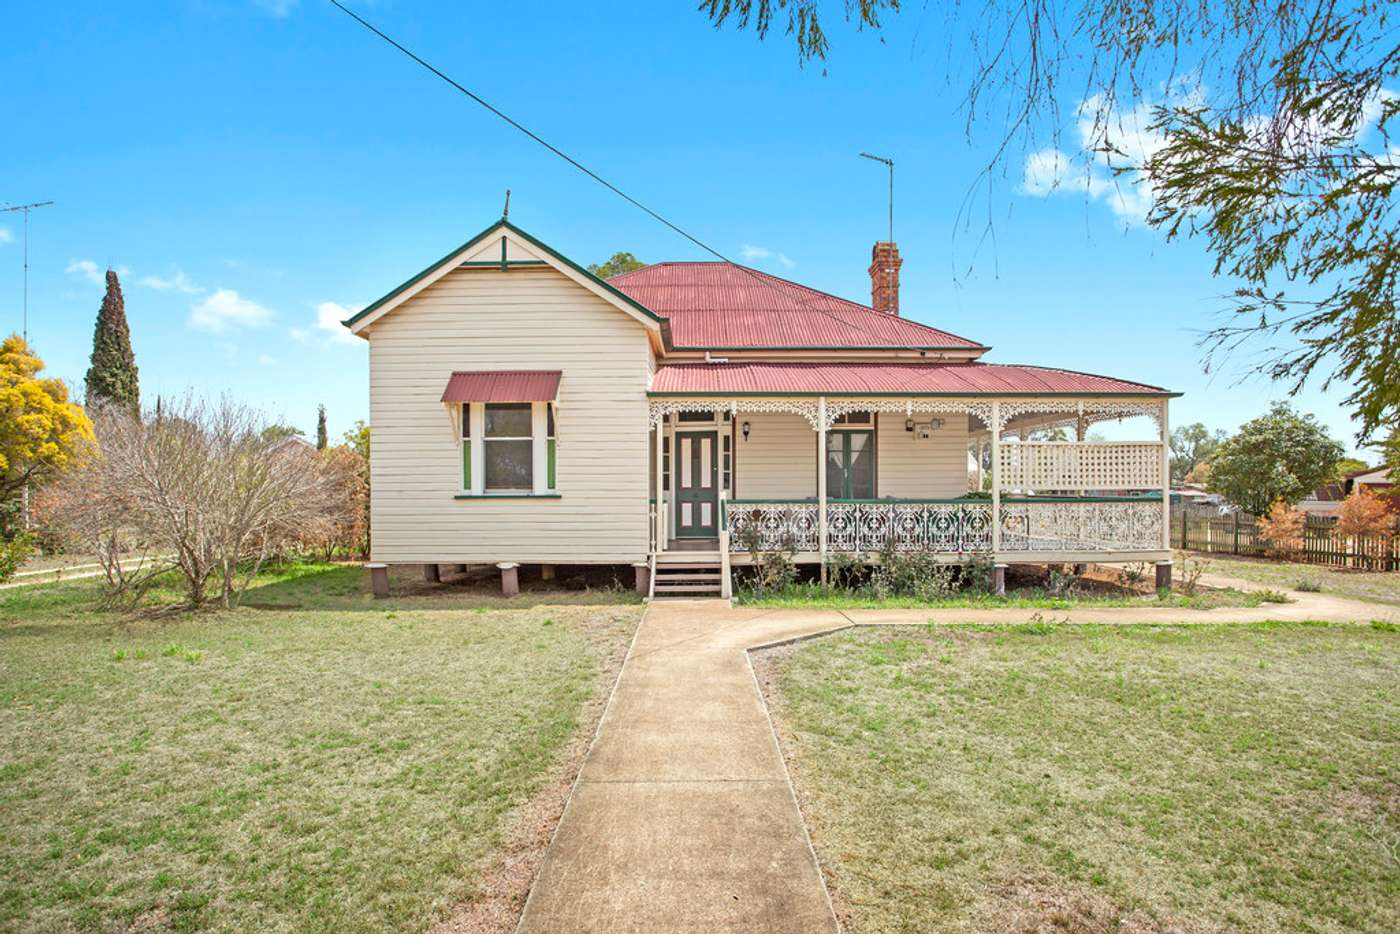 Main view of Homely house listing, 23 Norman Street, Clifton QLD 4361